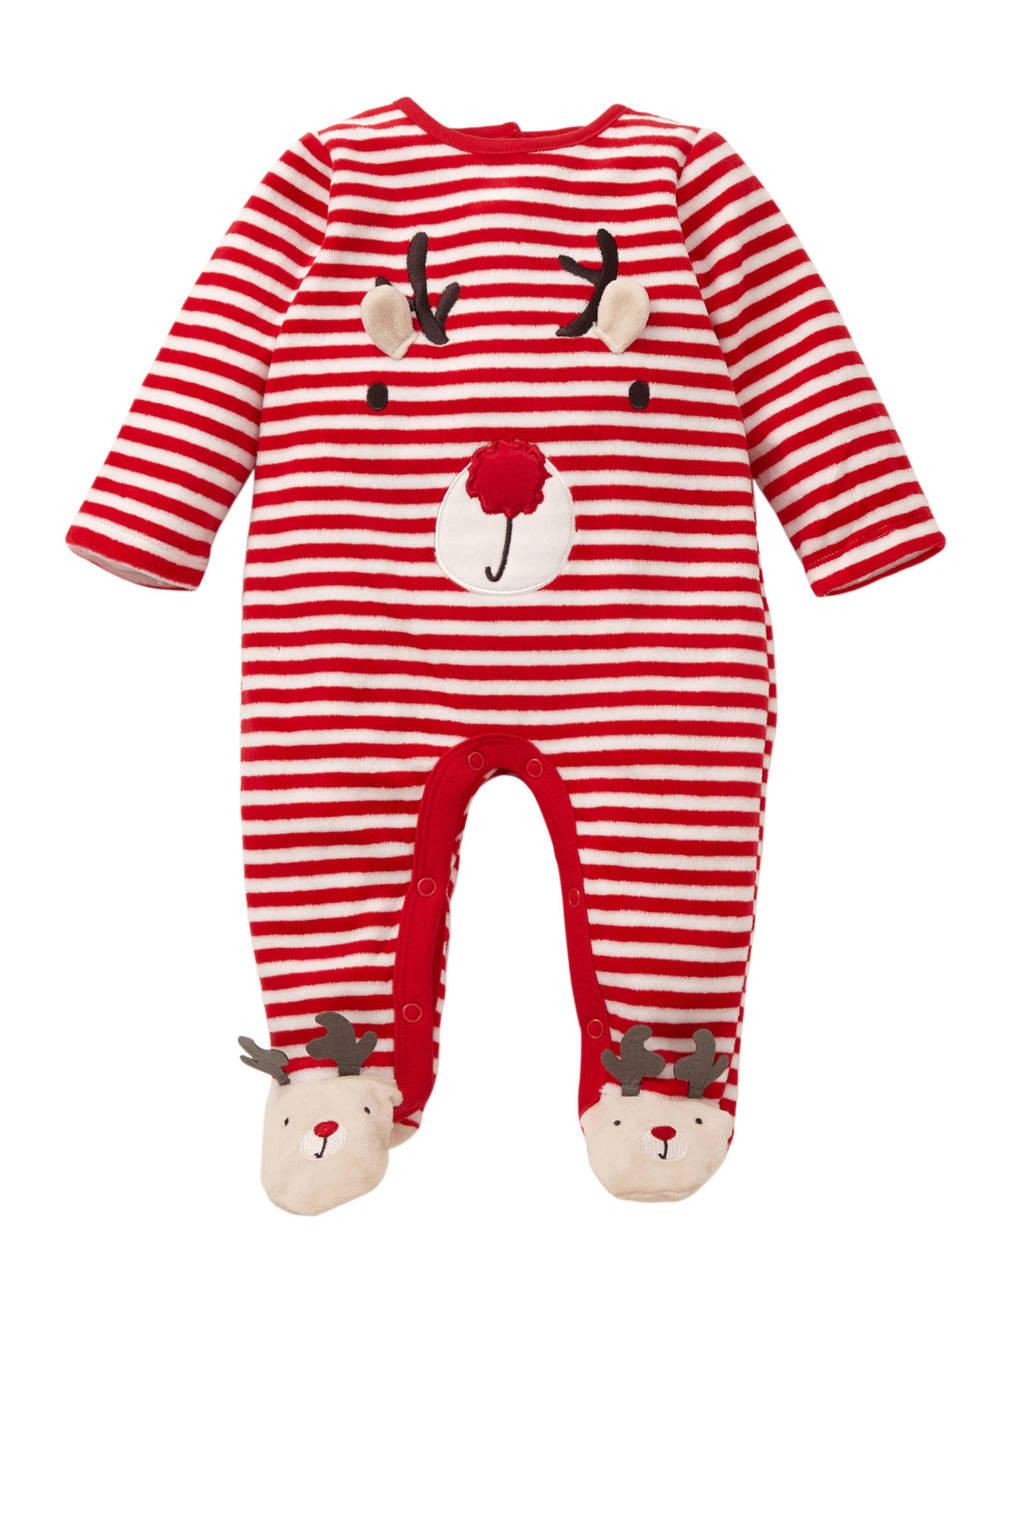 C&A Baby Club gestreept kerst boxpak rood, Rood/wit